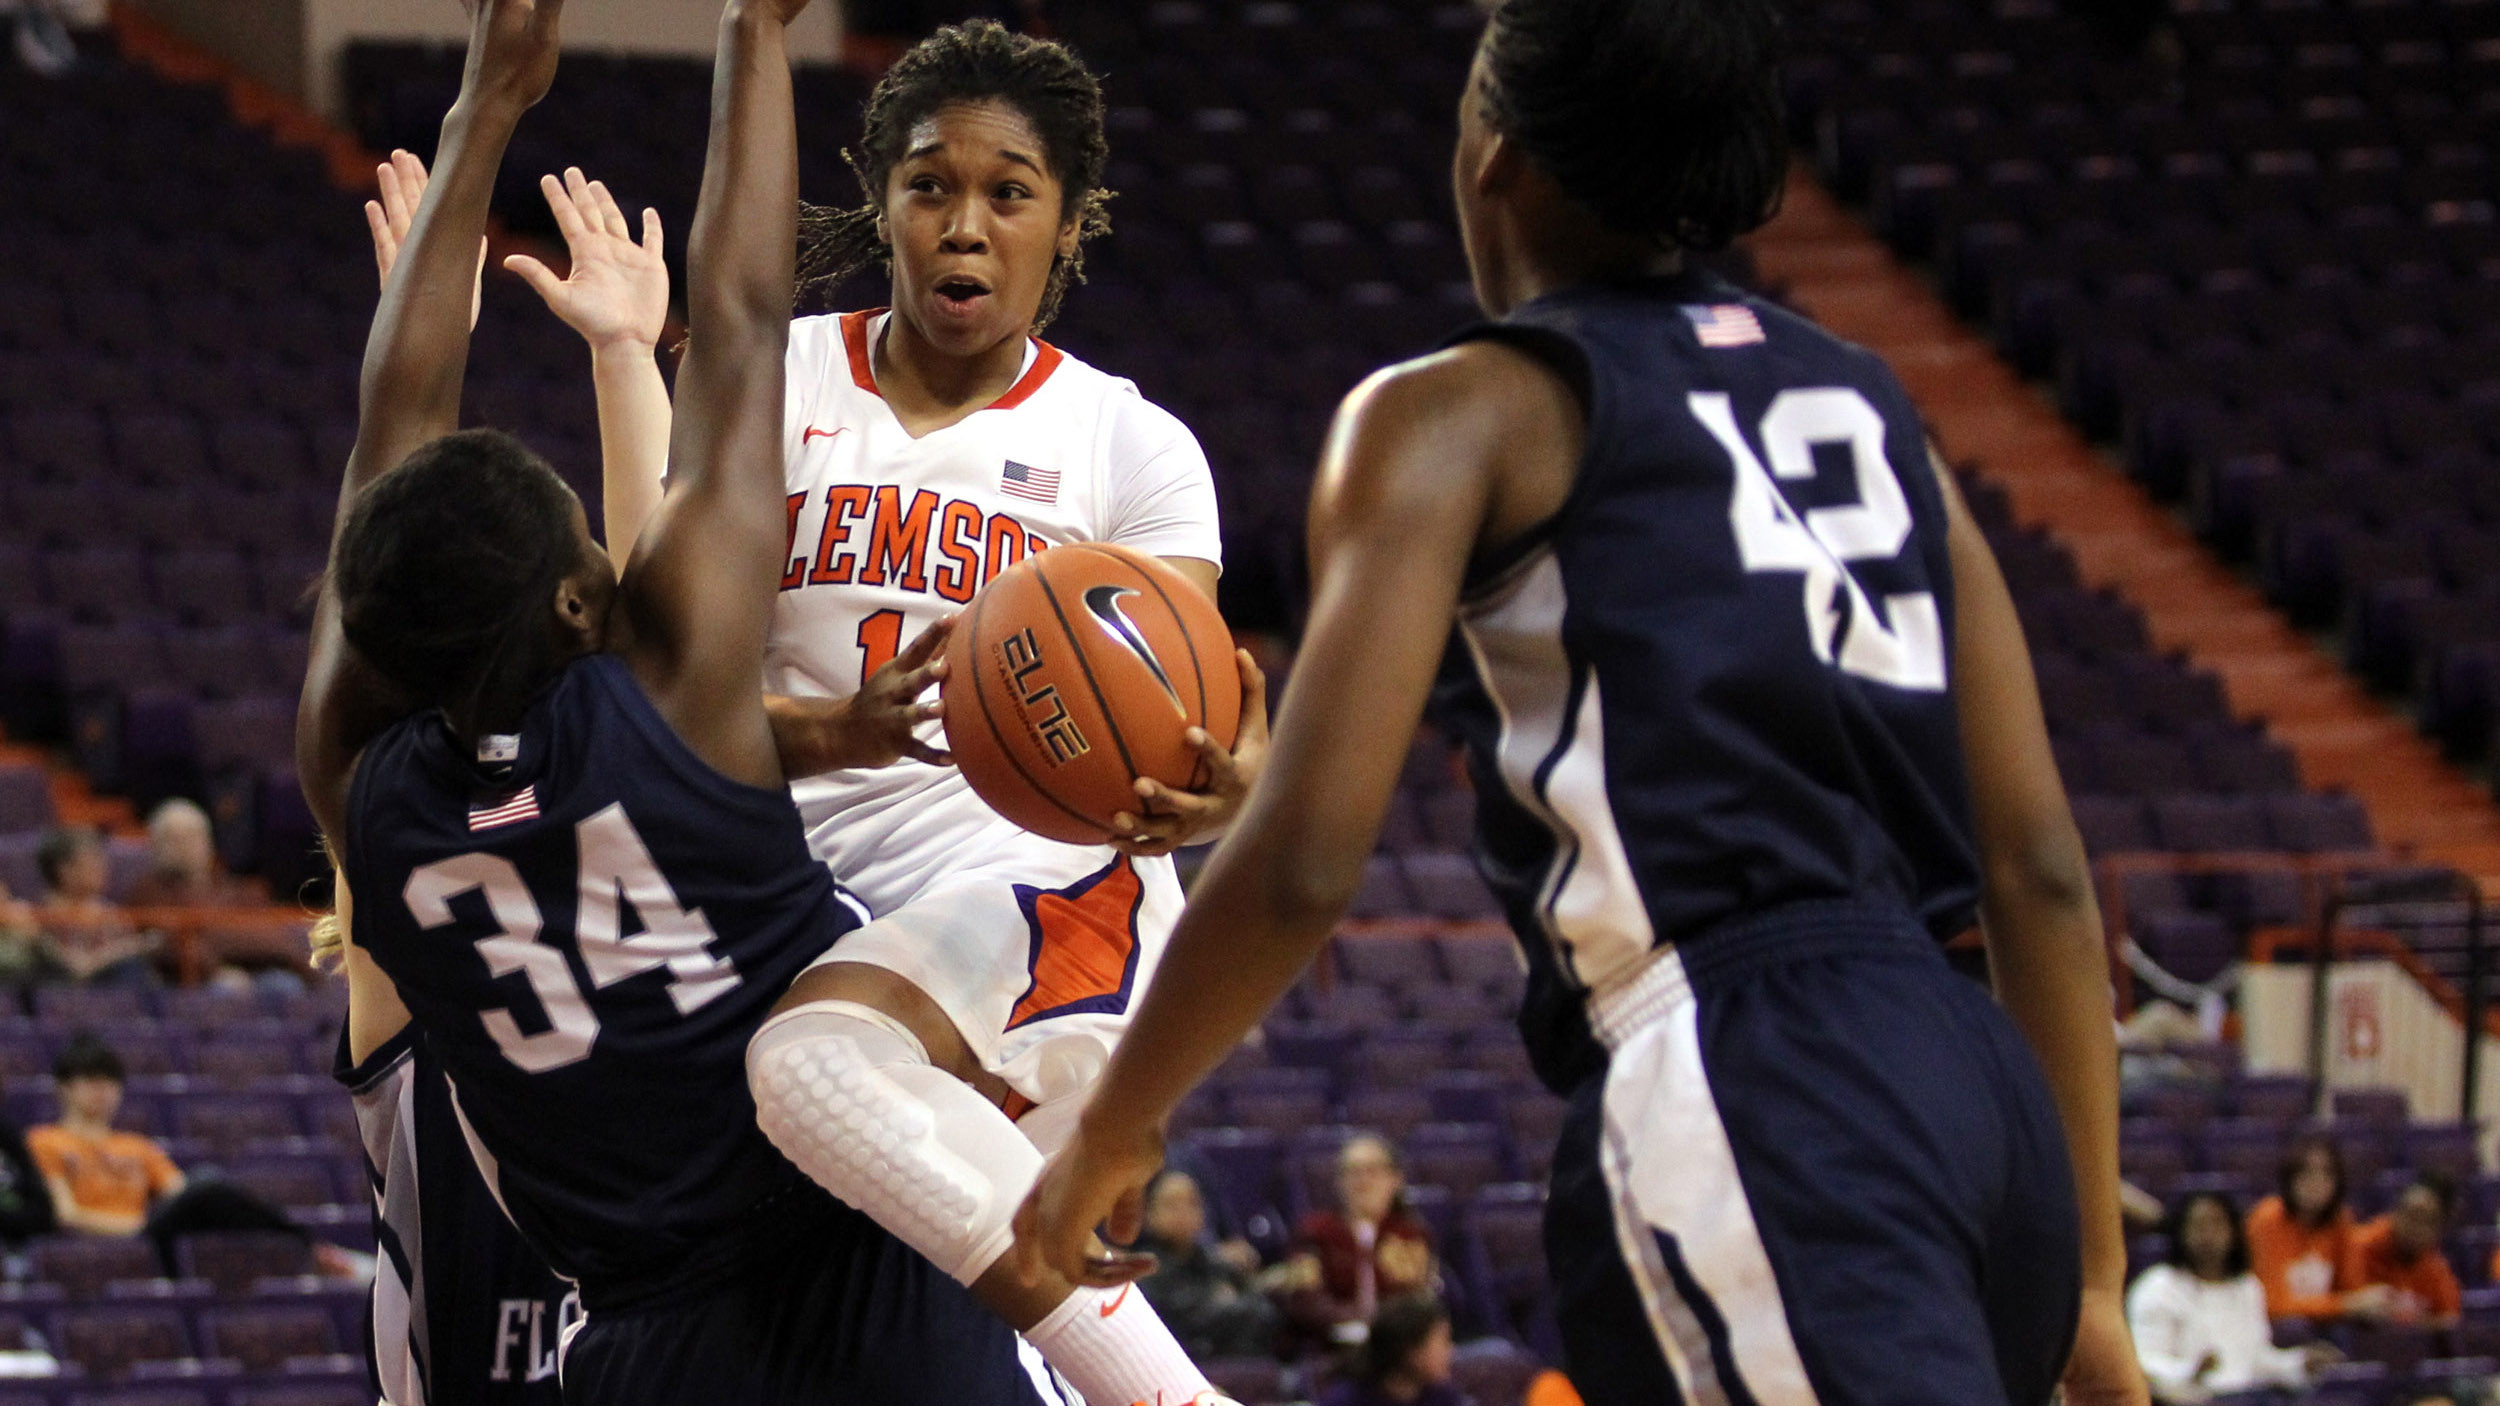 UPDATE: @ClemsonWBB Heads to New Jersey to Take on NJIT